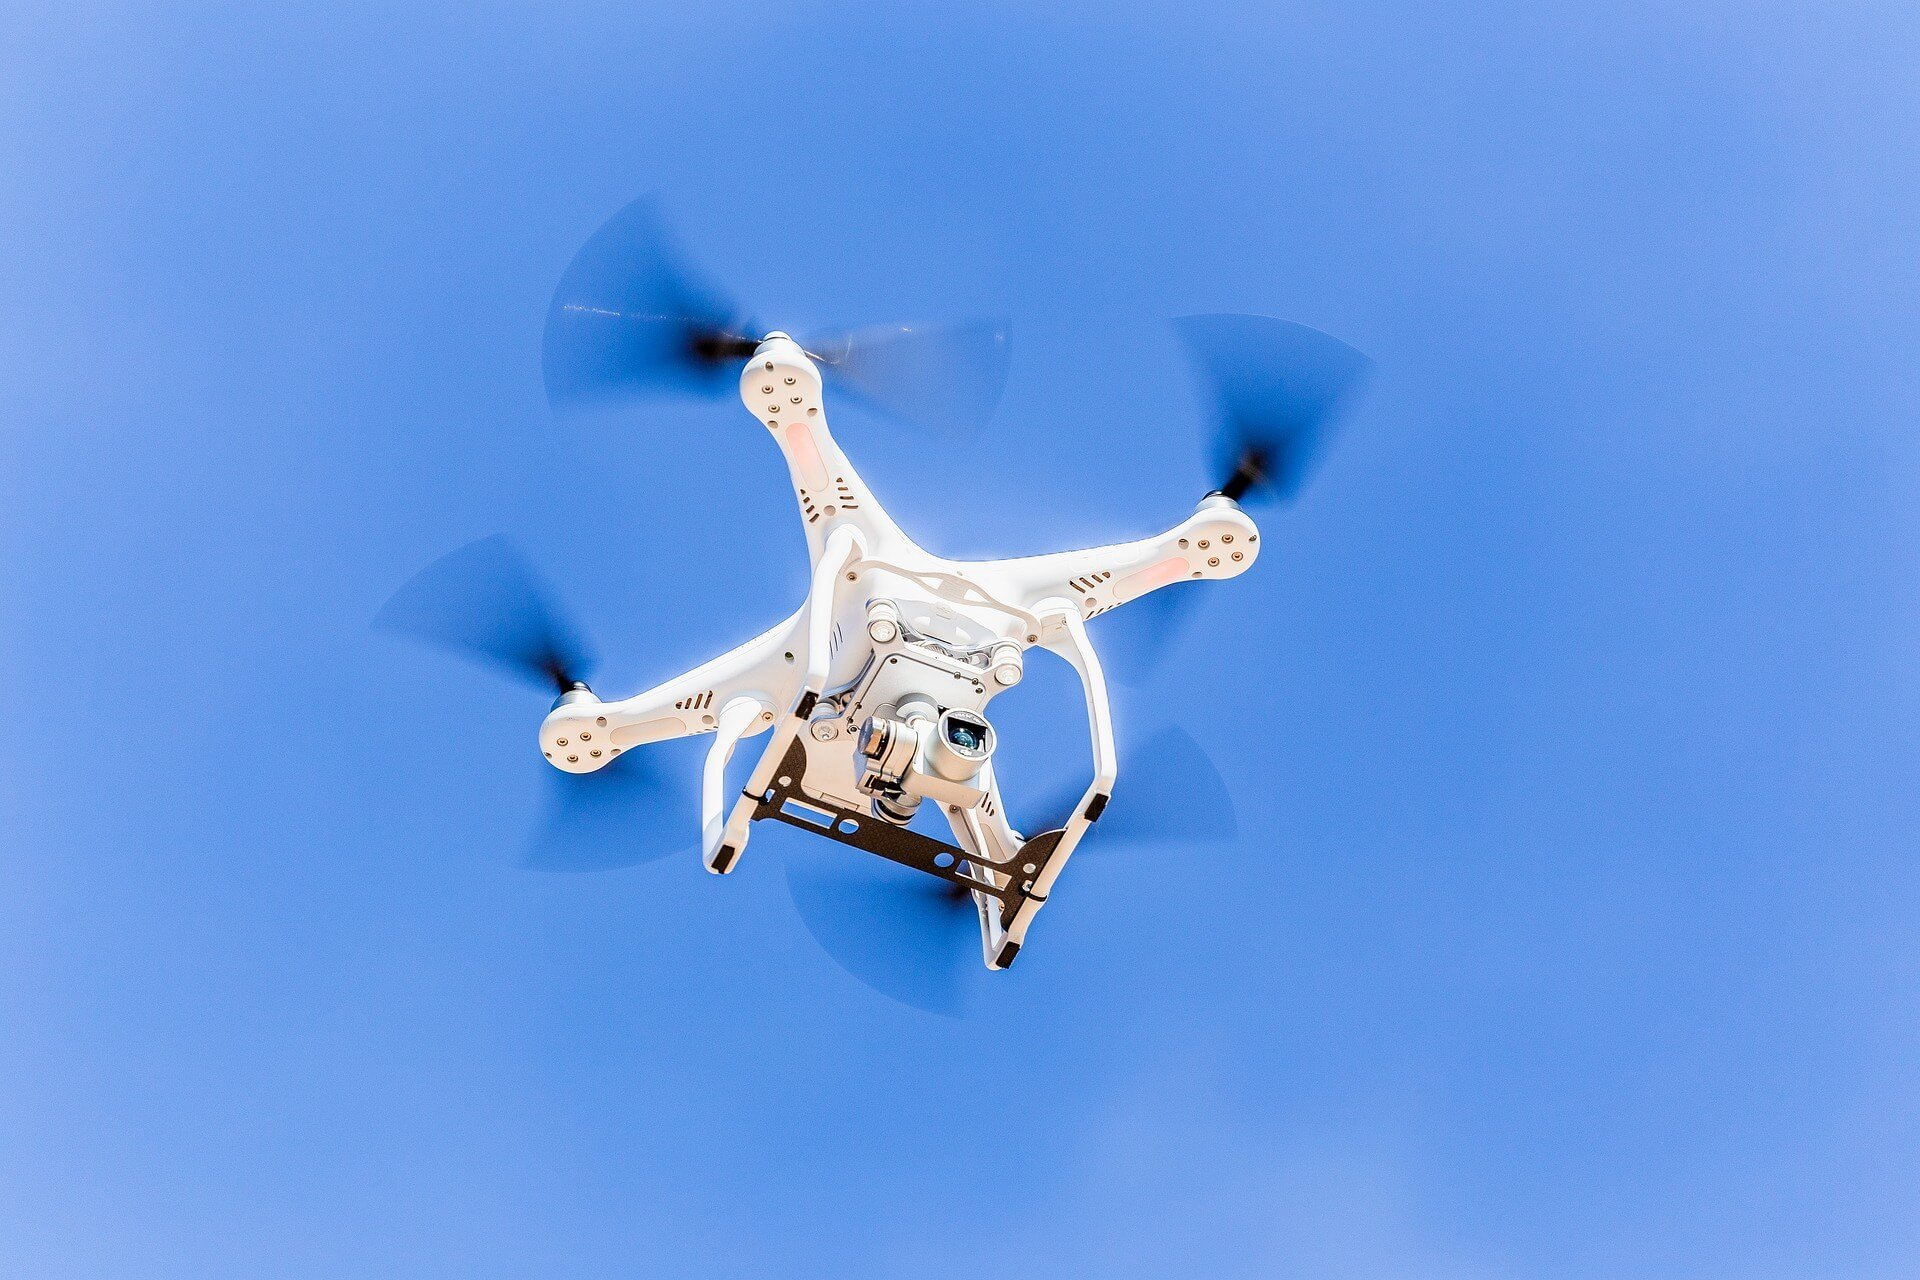 A3UAV - Practical Drone Flying Experience